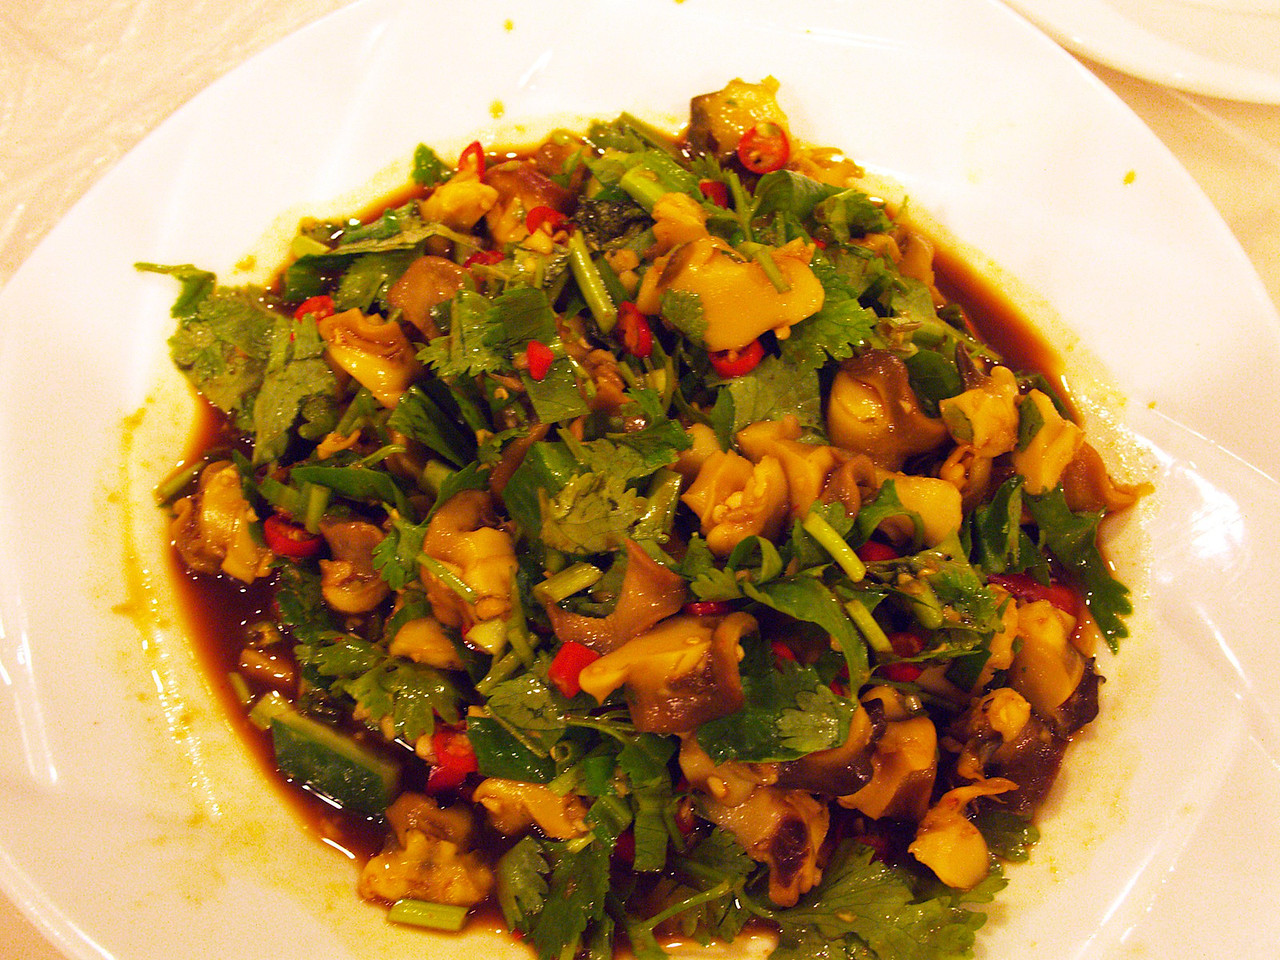 a delicious fungus dish in kunming